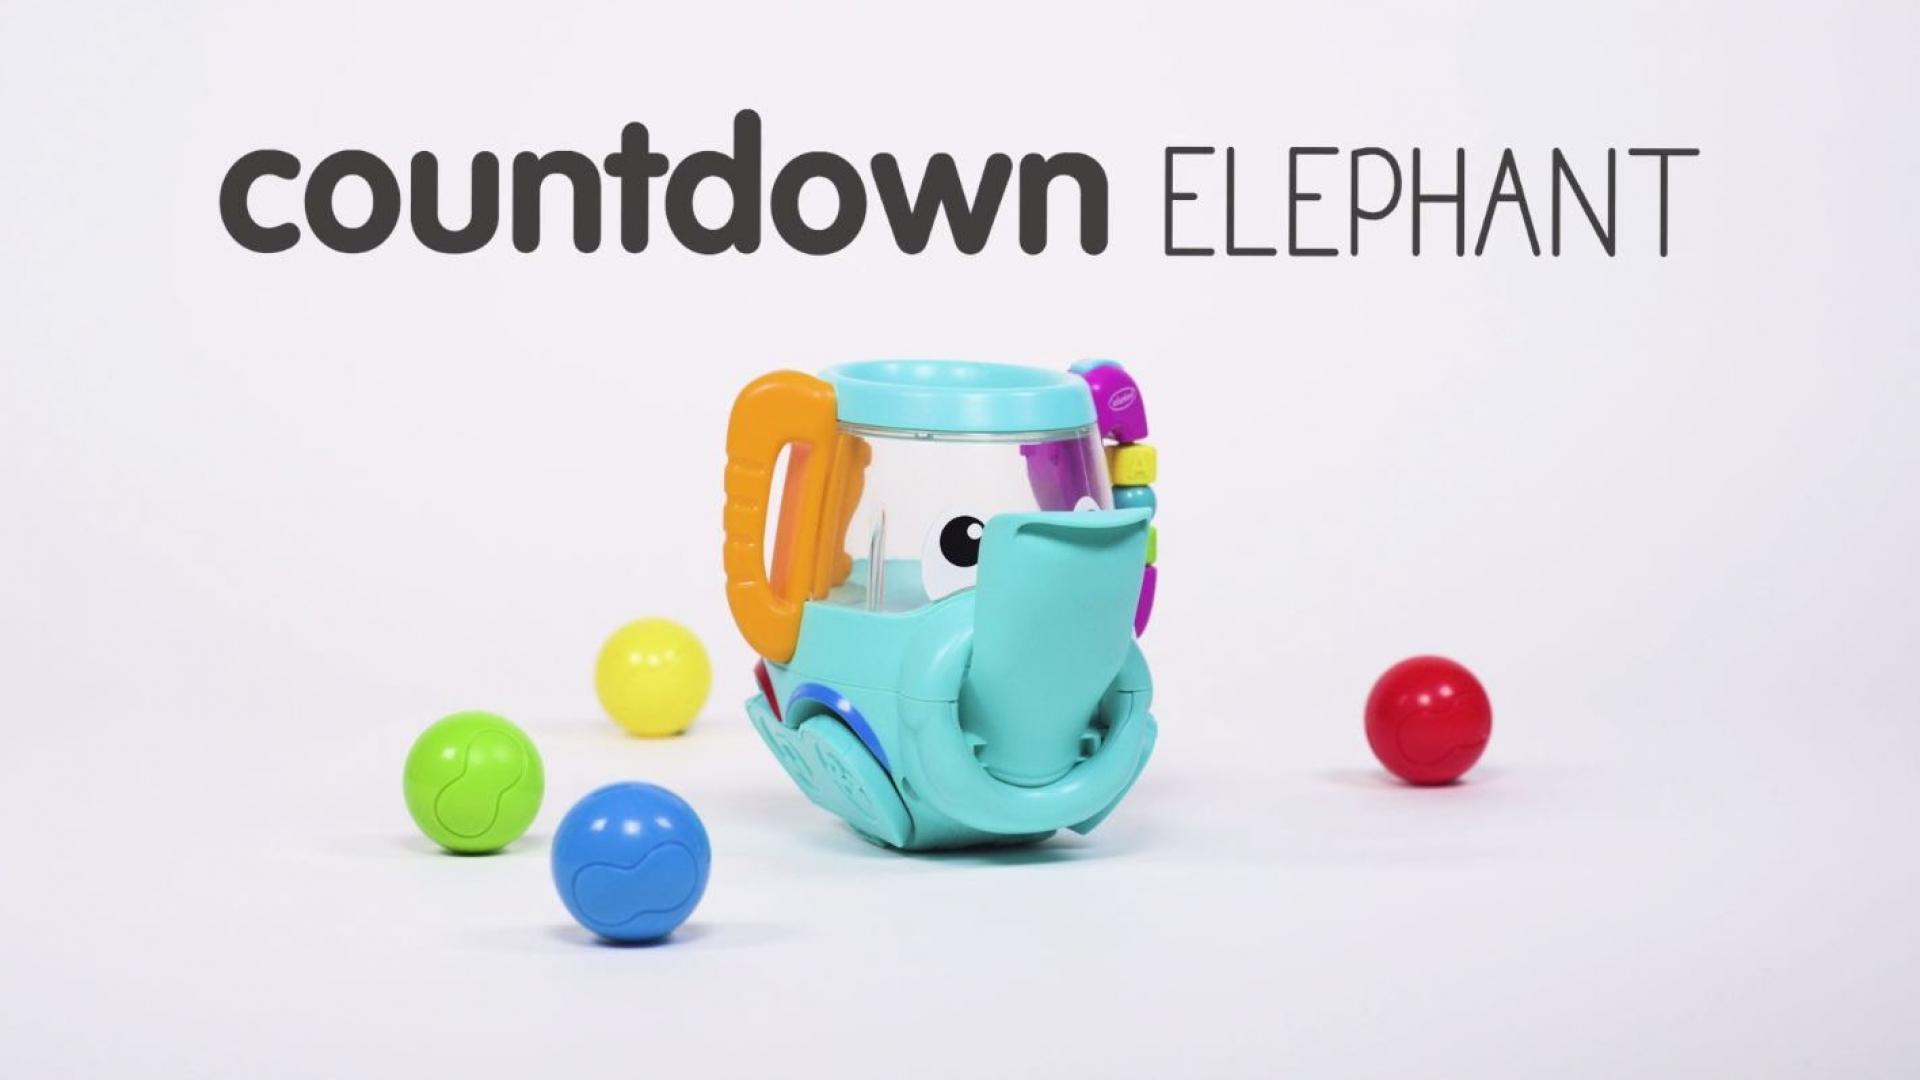 Countdown Elephant - Infantino Noodling Collection